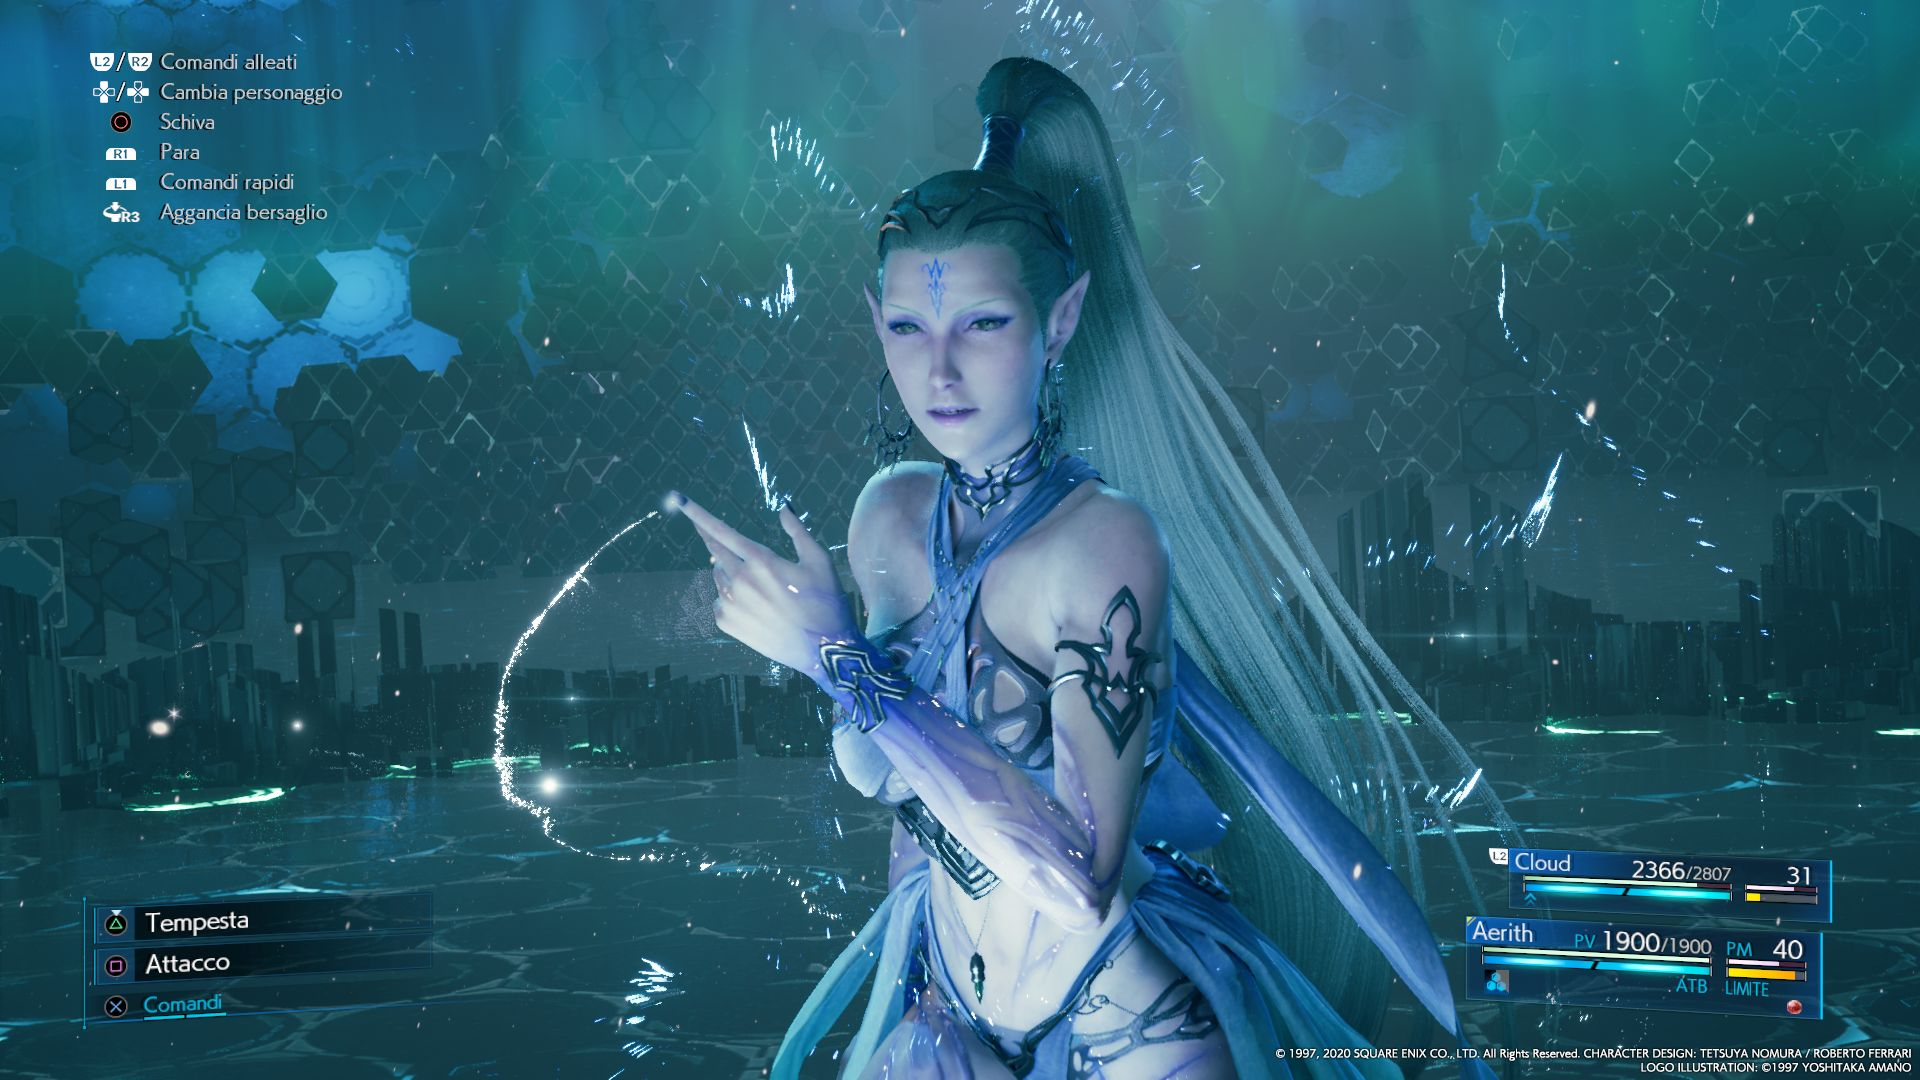 L'Esper Shiva in FINAL FANTASY VII REMAKE